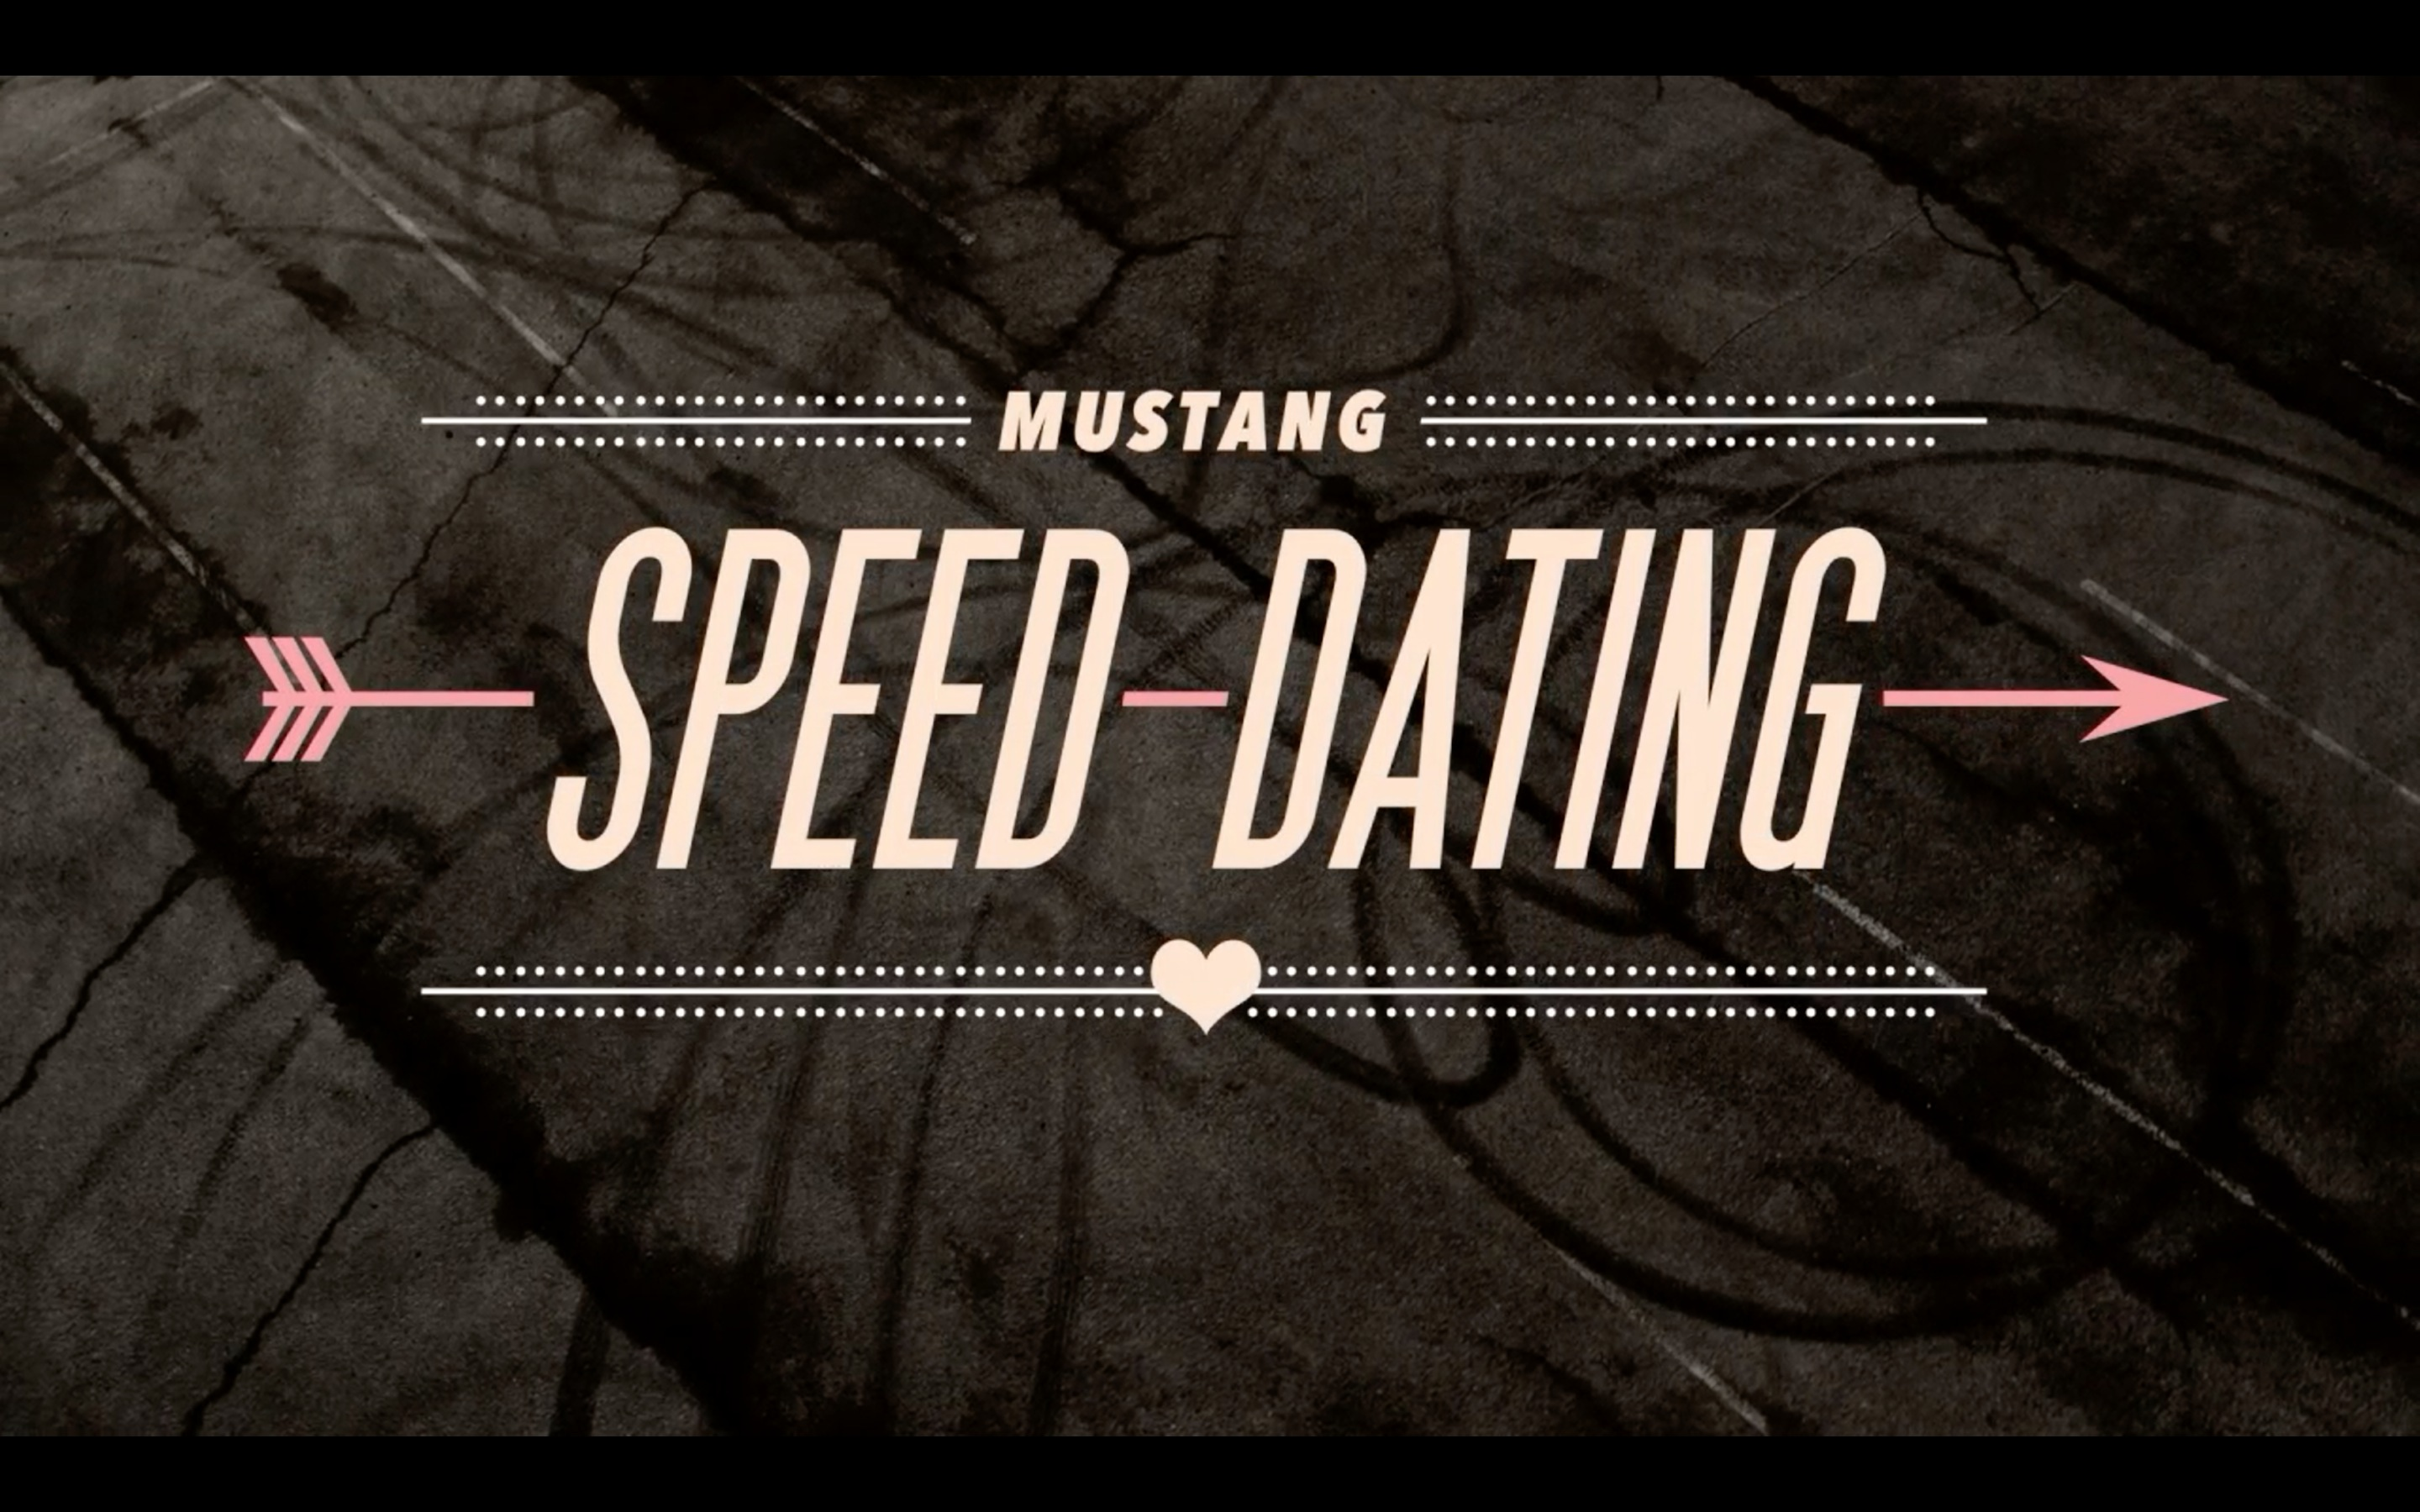 speed dating stereotypes This new documentary follows the illuminating adventures of 30 older adults who attend a first-of-its-kind speed dating  we're challenging the stereotypes of.